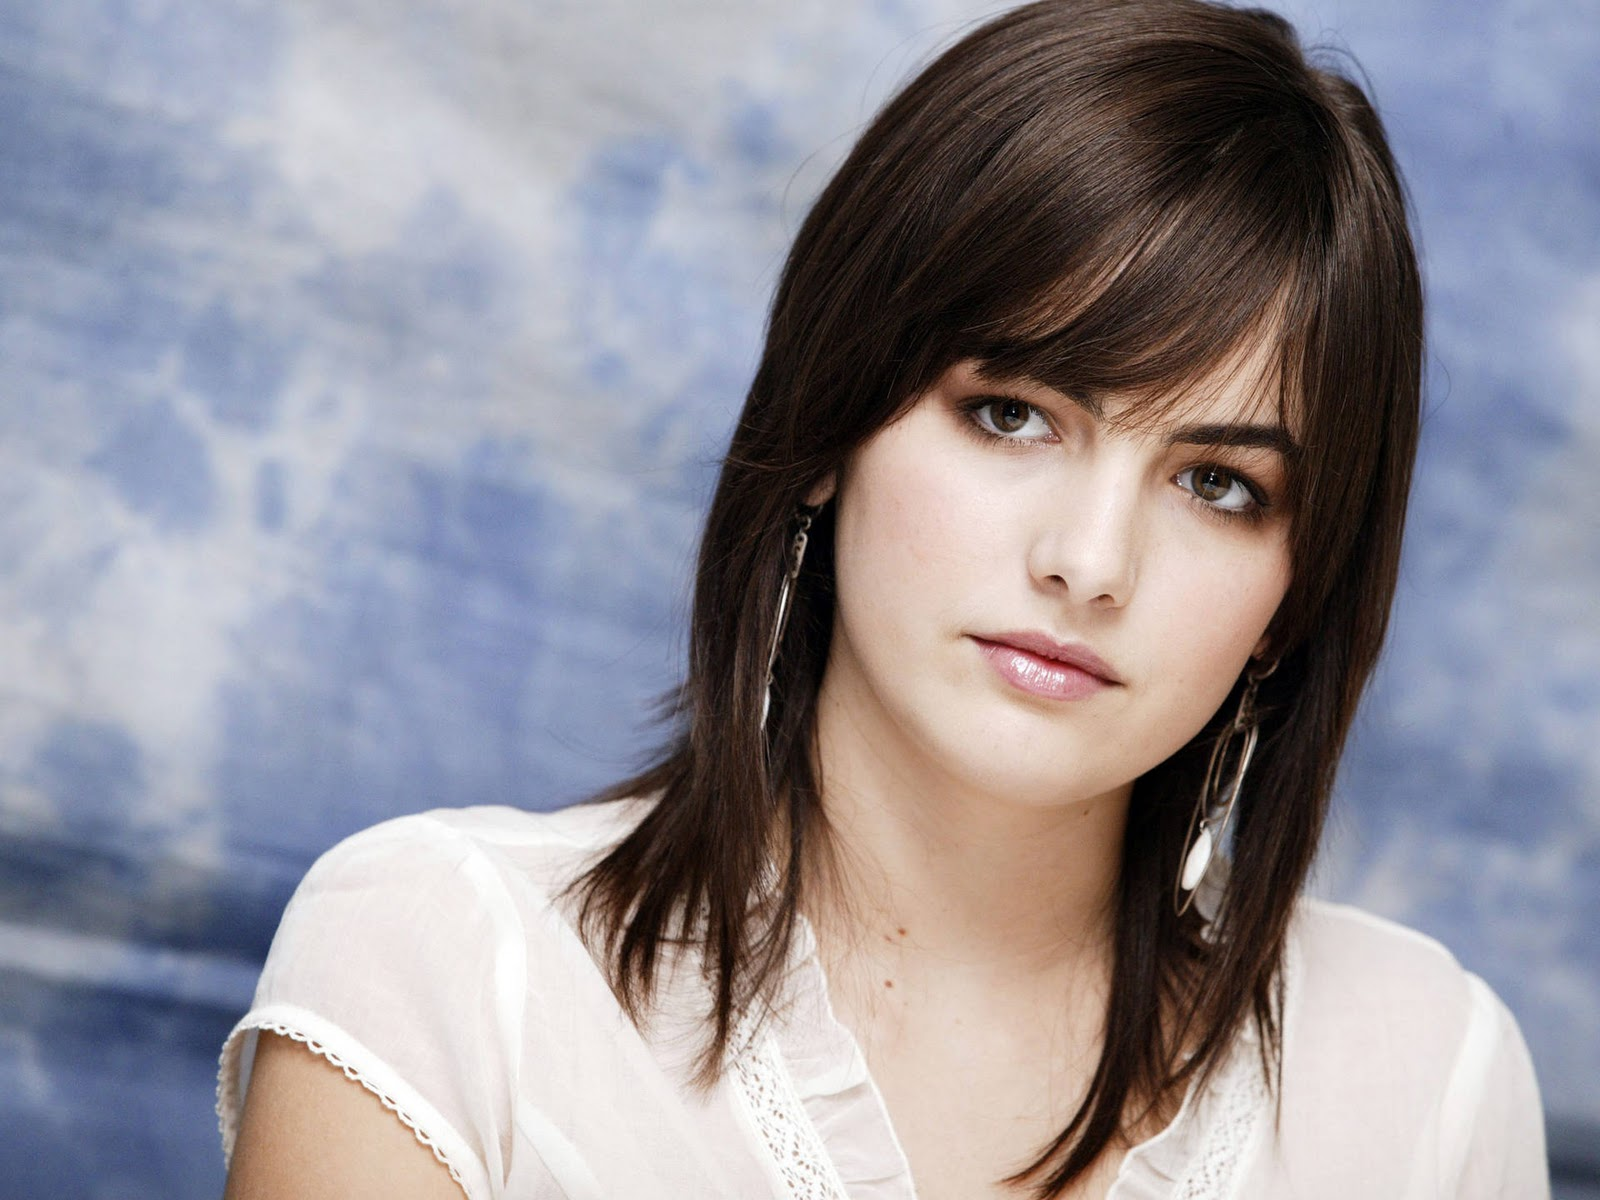 Best pict of celebrity camilla belle hollywood actress - Hollywood actress full hd images ...